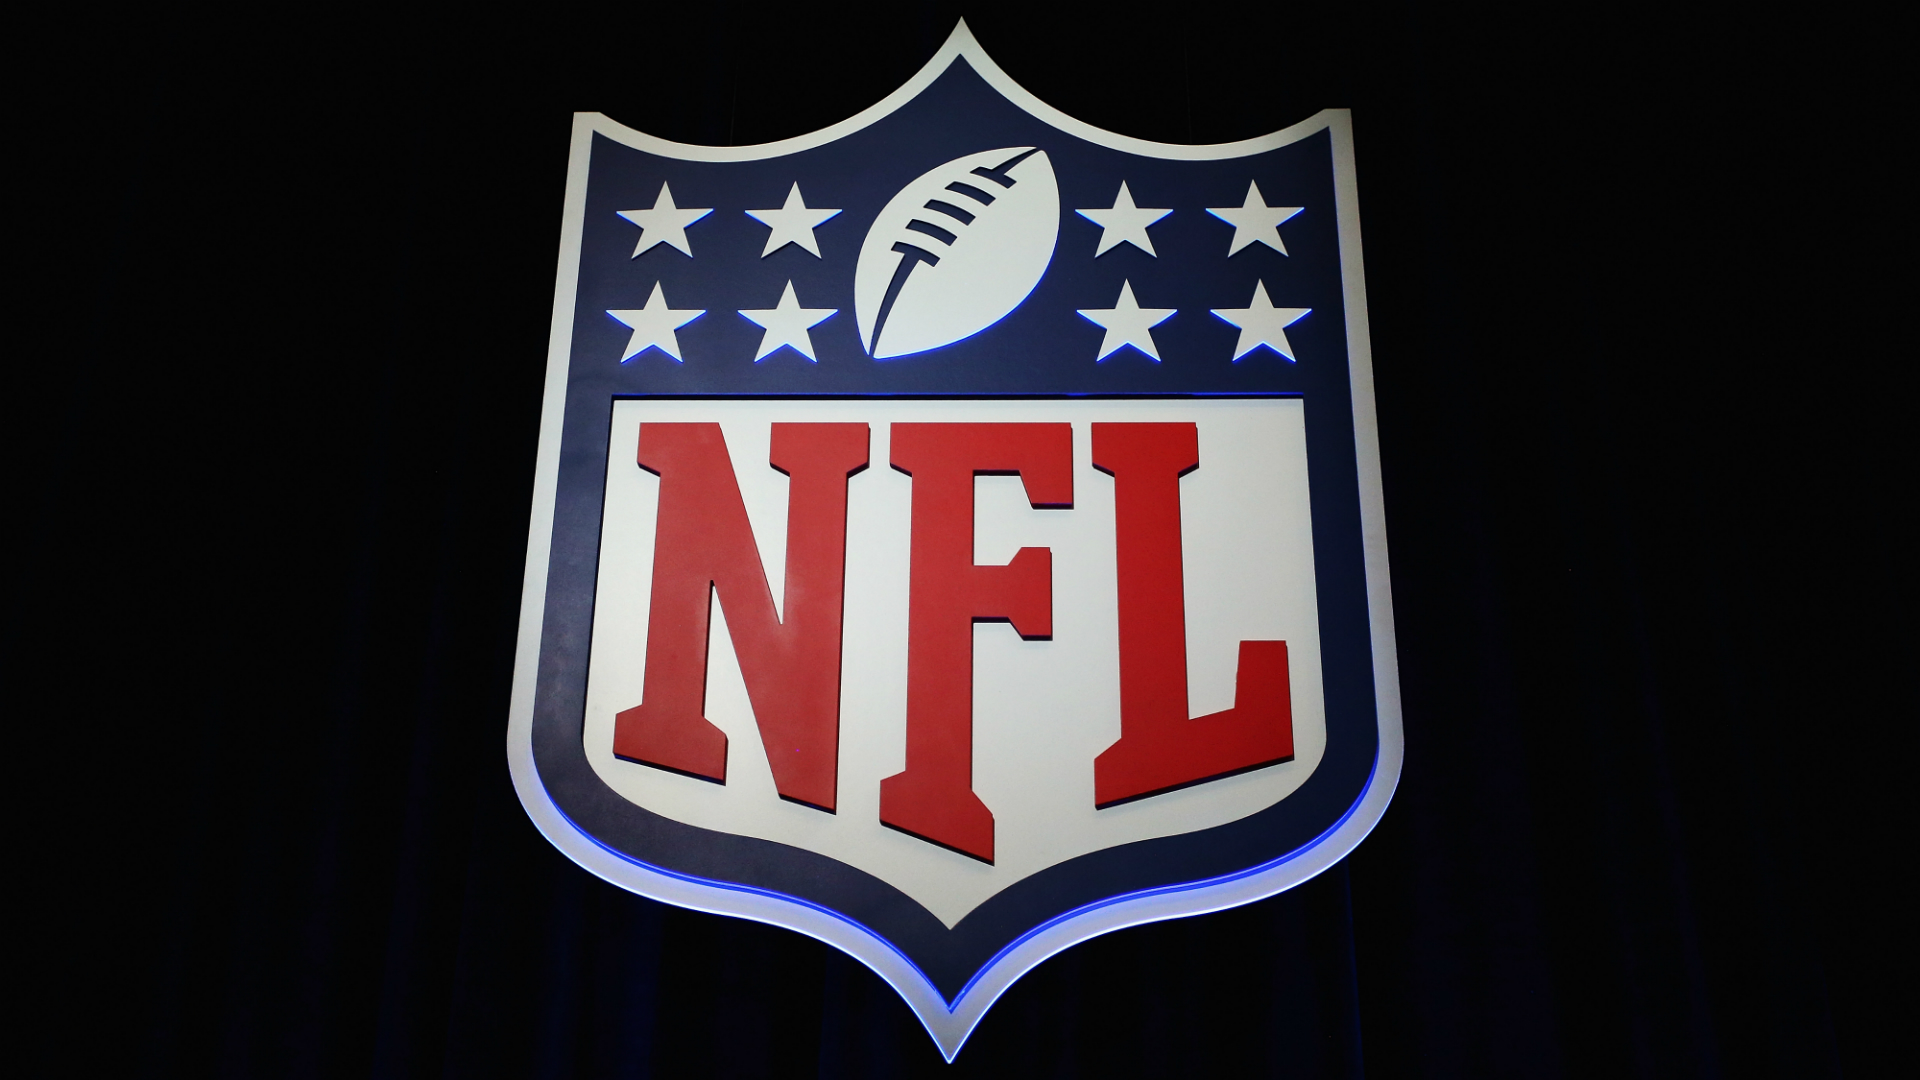 nfl offseason schedule 2017 when is the combine  free nascar logo pics Old NASCAR Logo